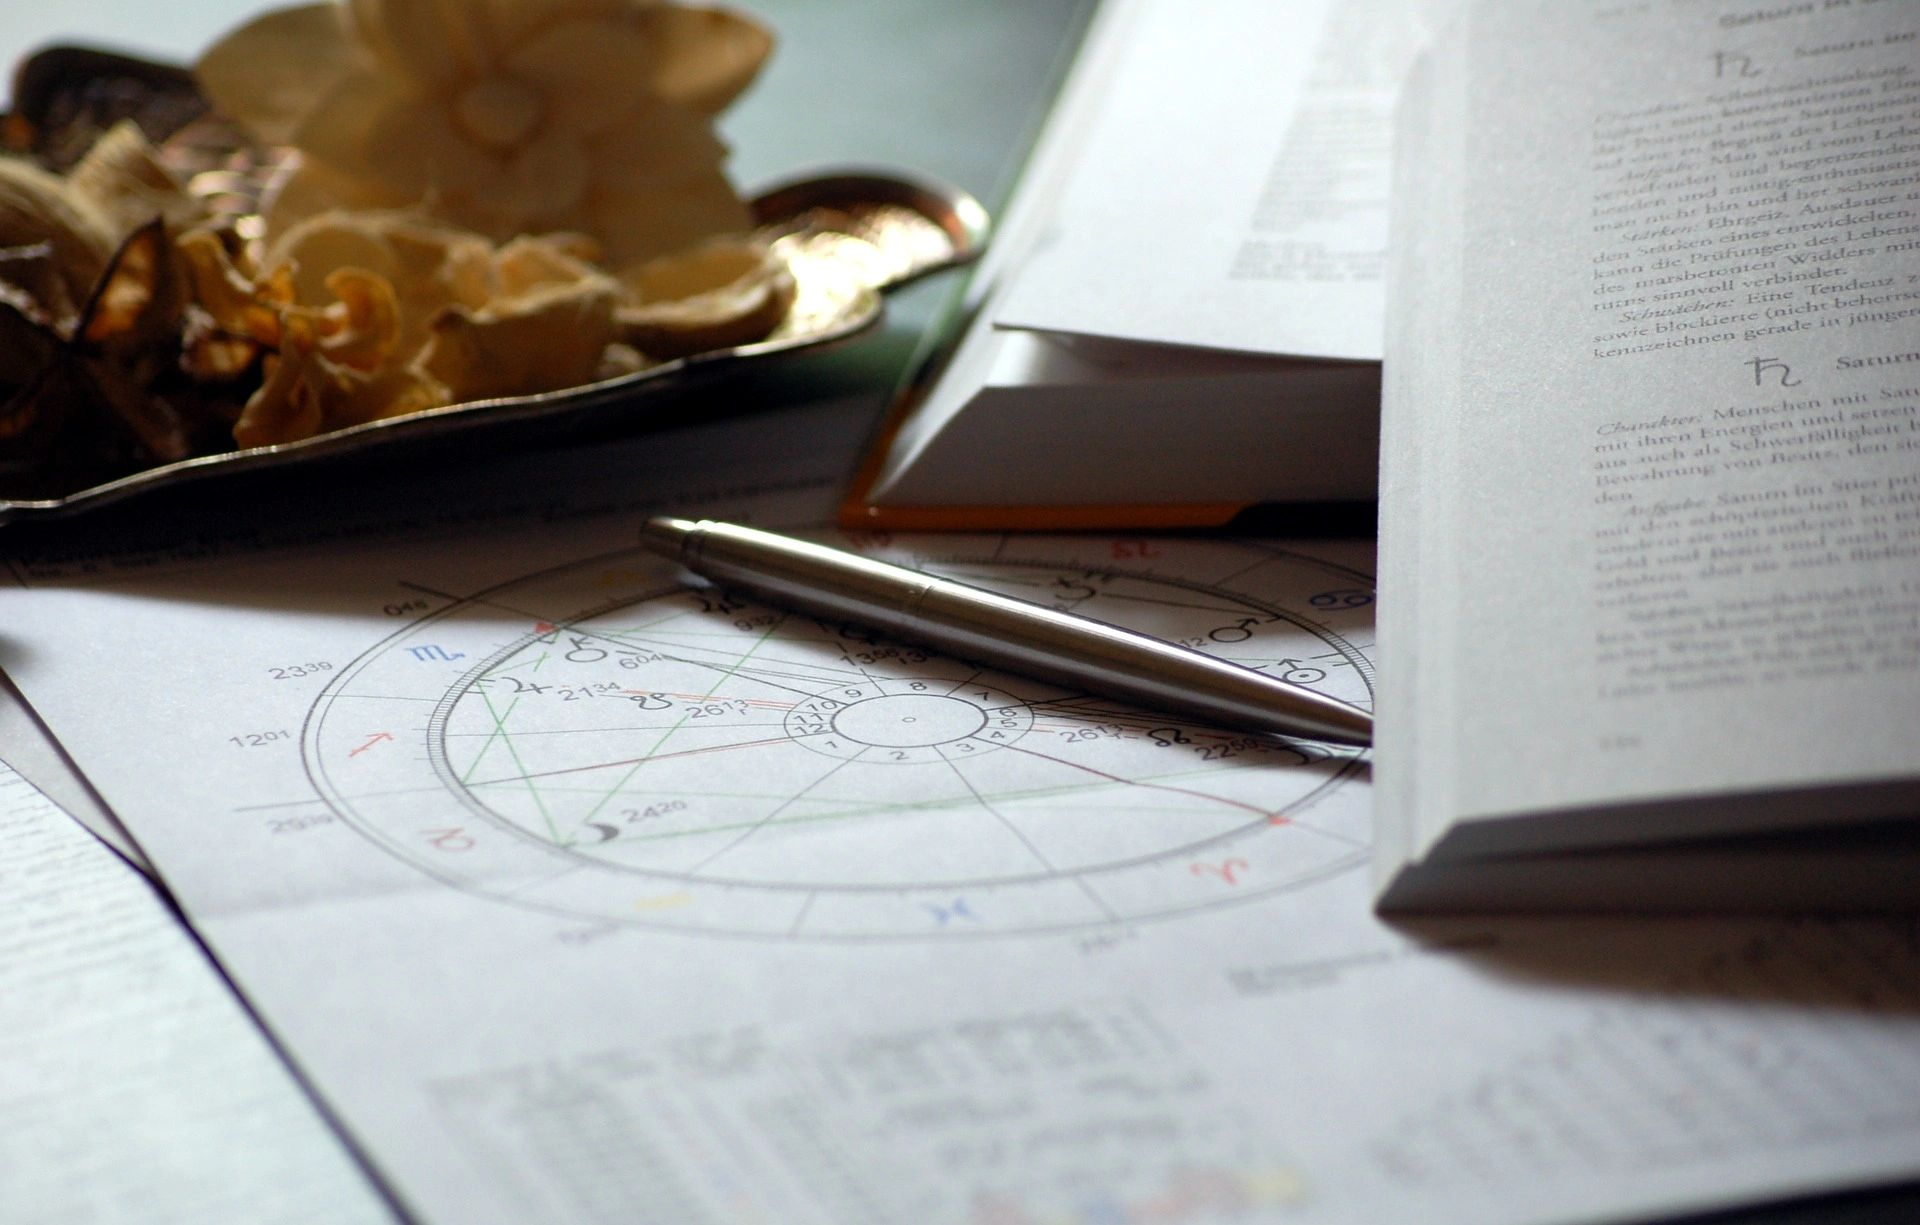 Astrology Chart, Astrology Classes, Astrology Seminars, Astrology Workshops, Astrology